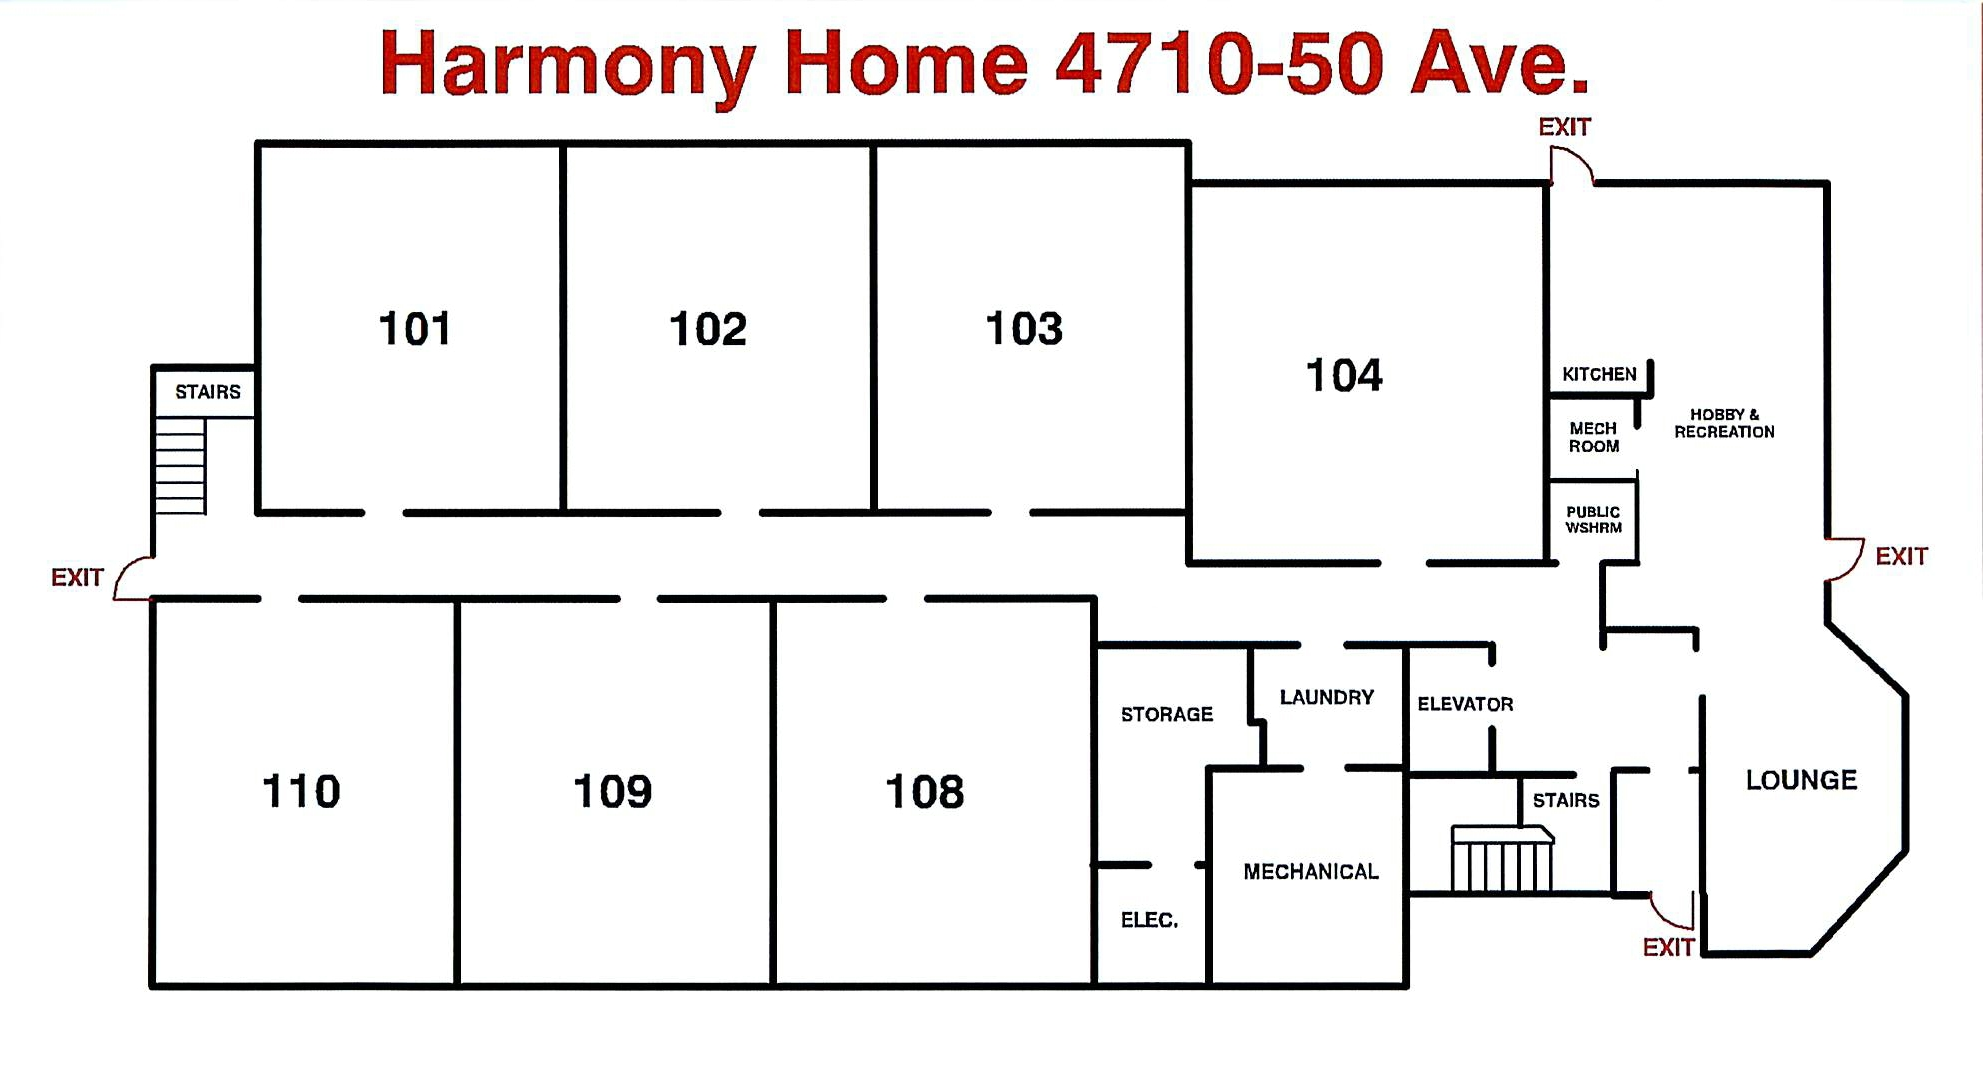 Floor Plan - Harmony Home 1st Floor May 2018